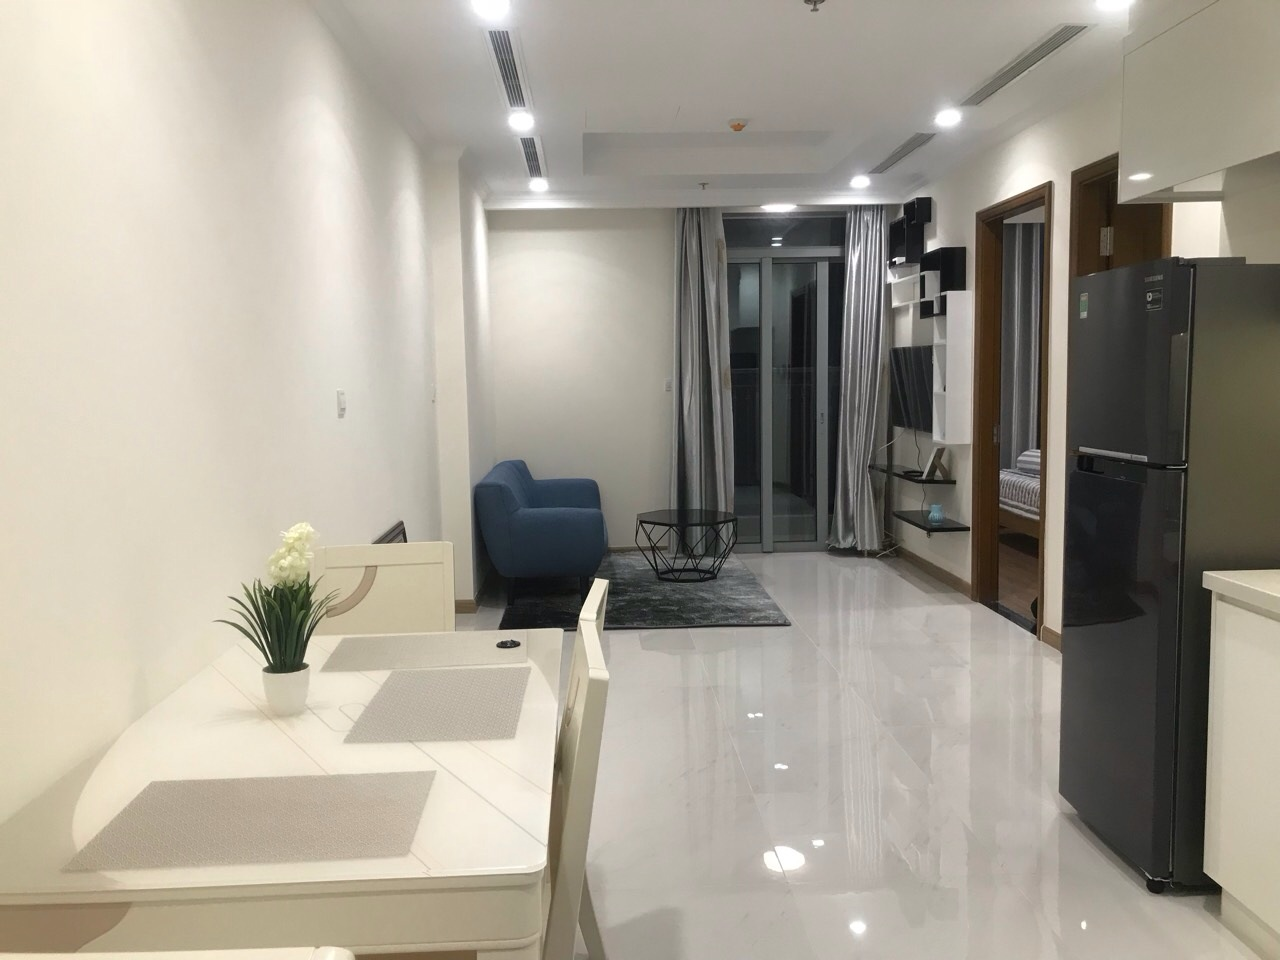 apartment for rent in Vinhomes Central Park Binh Thanh  District HCM BT105L3520 (3)